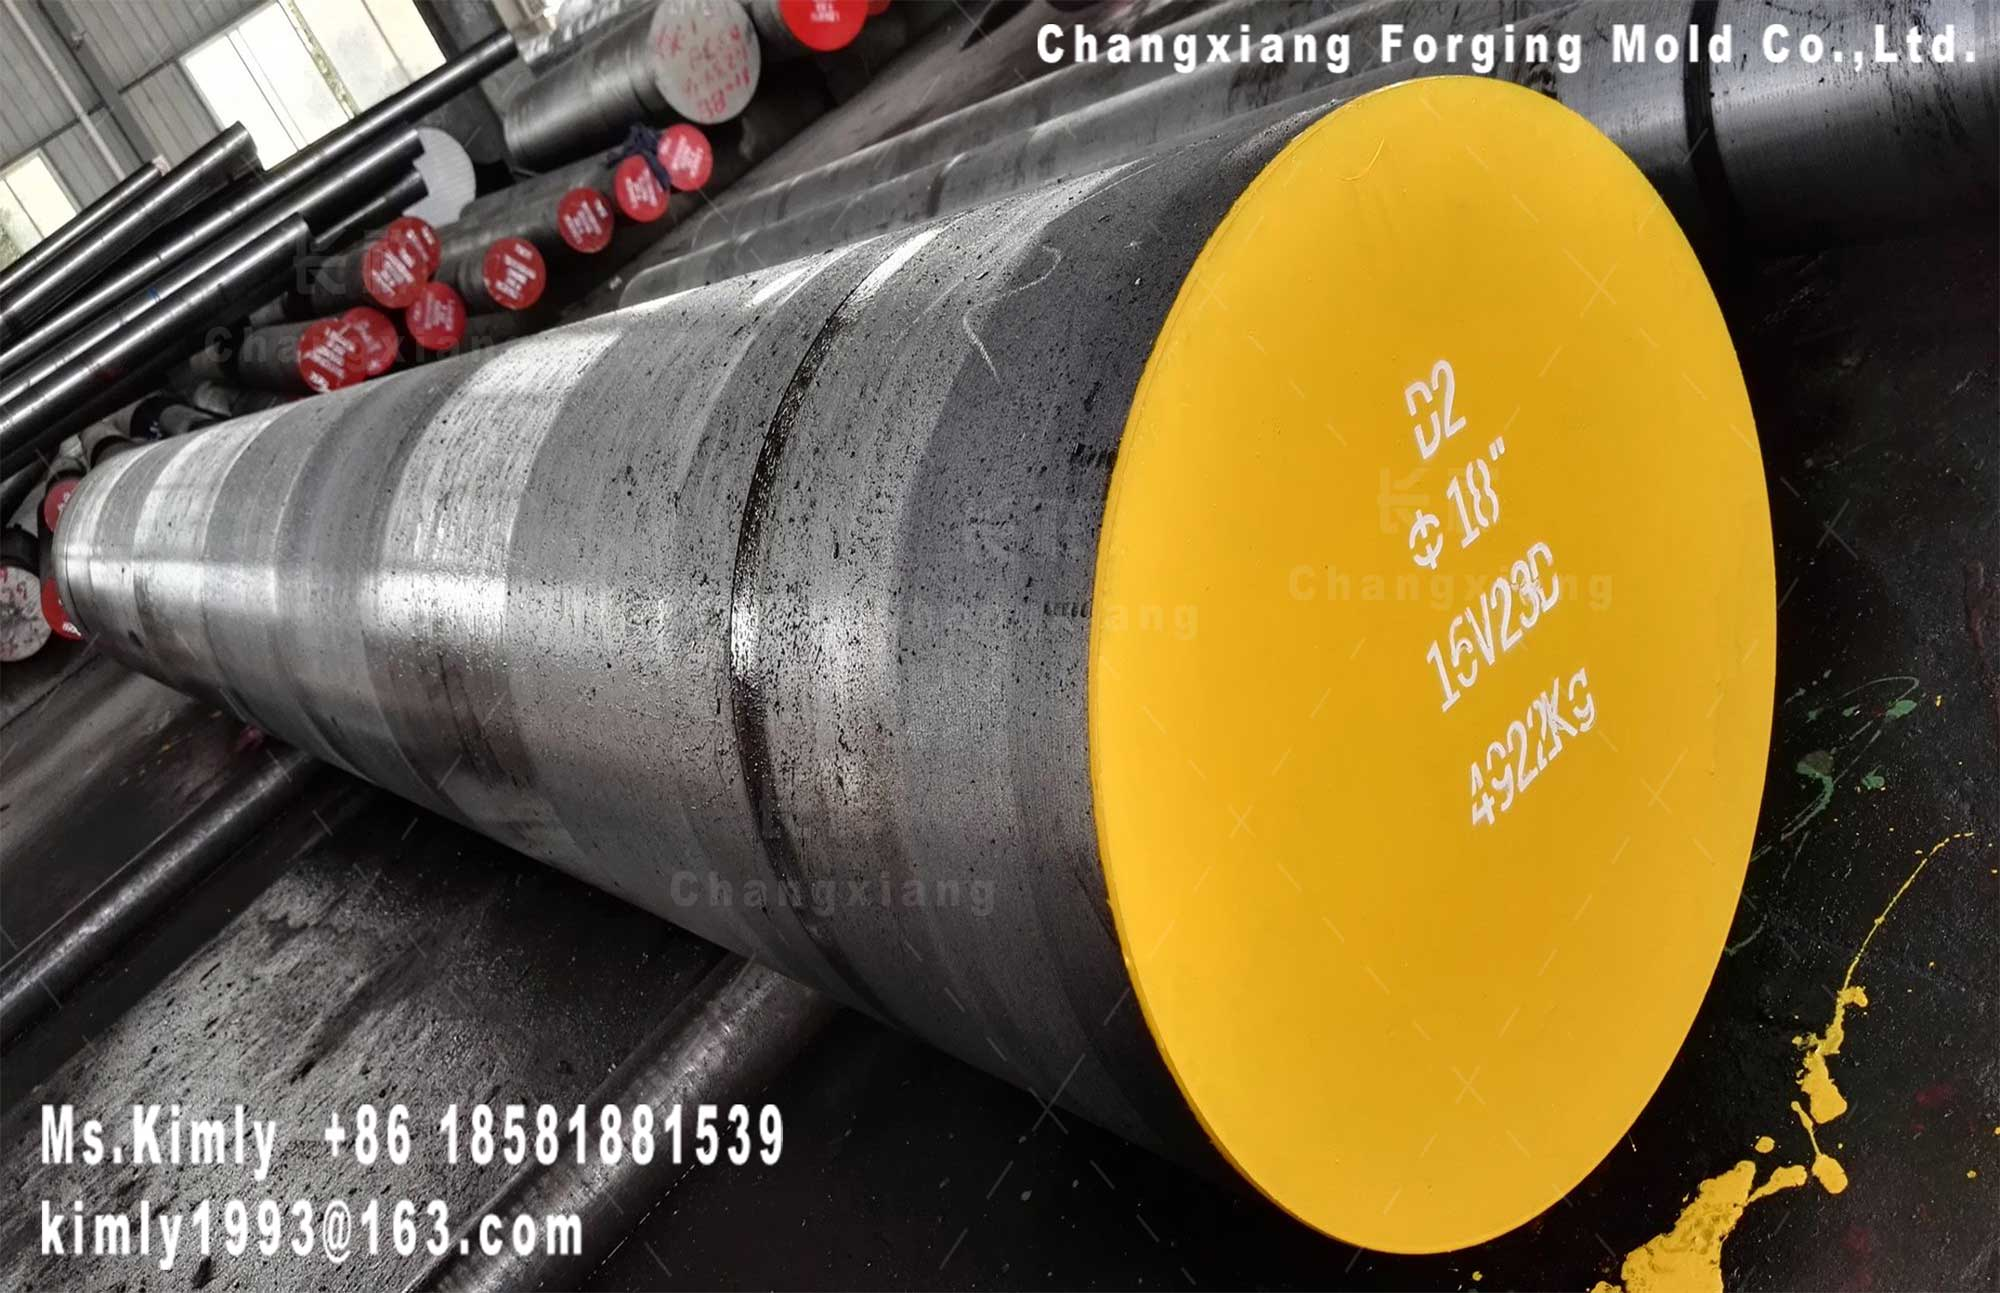 Forged mold die stainless special tool steel AISI D2 flat round bar forging